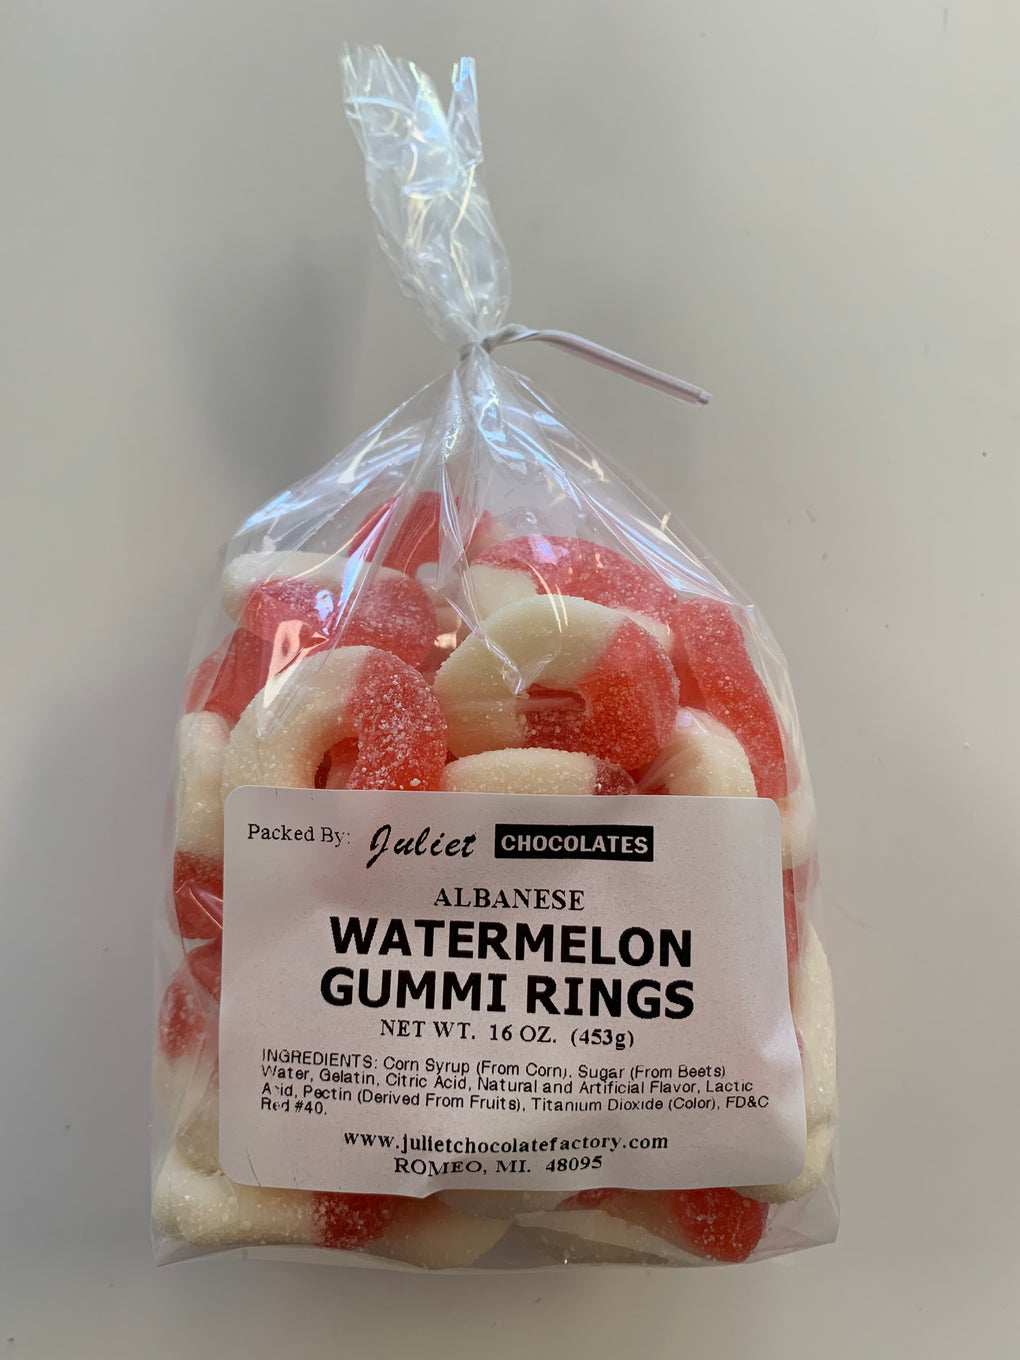 Watermelon Gummi Rings